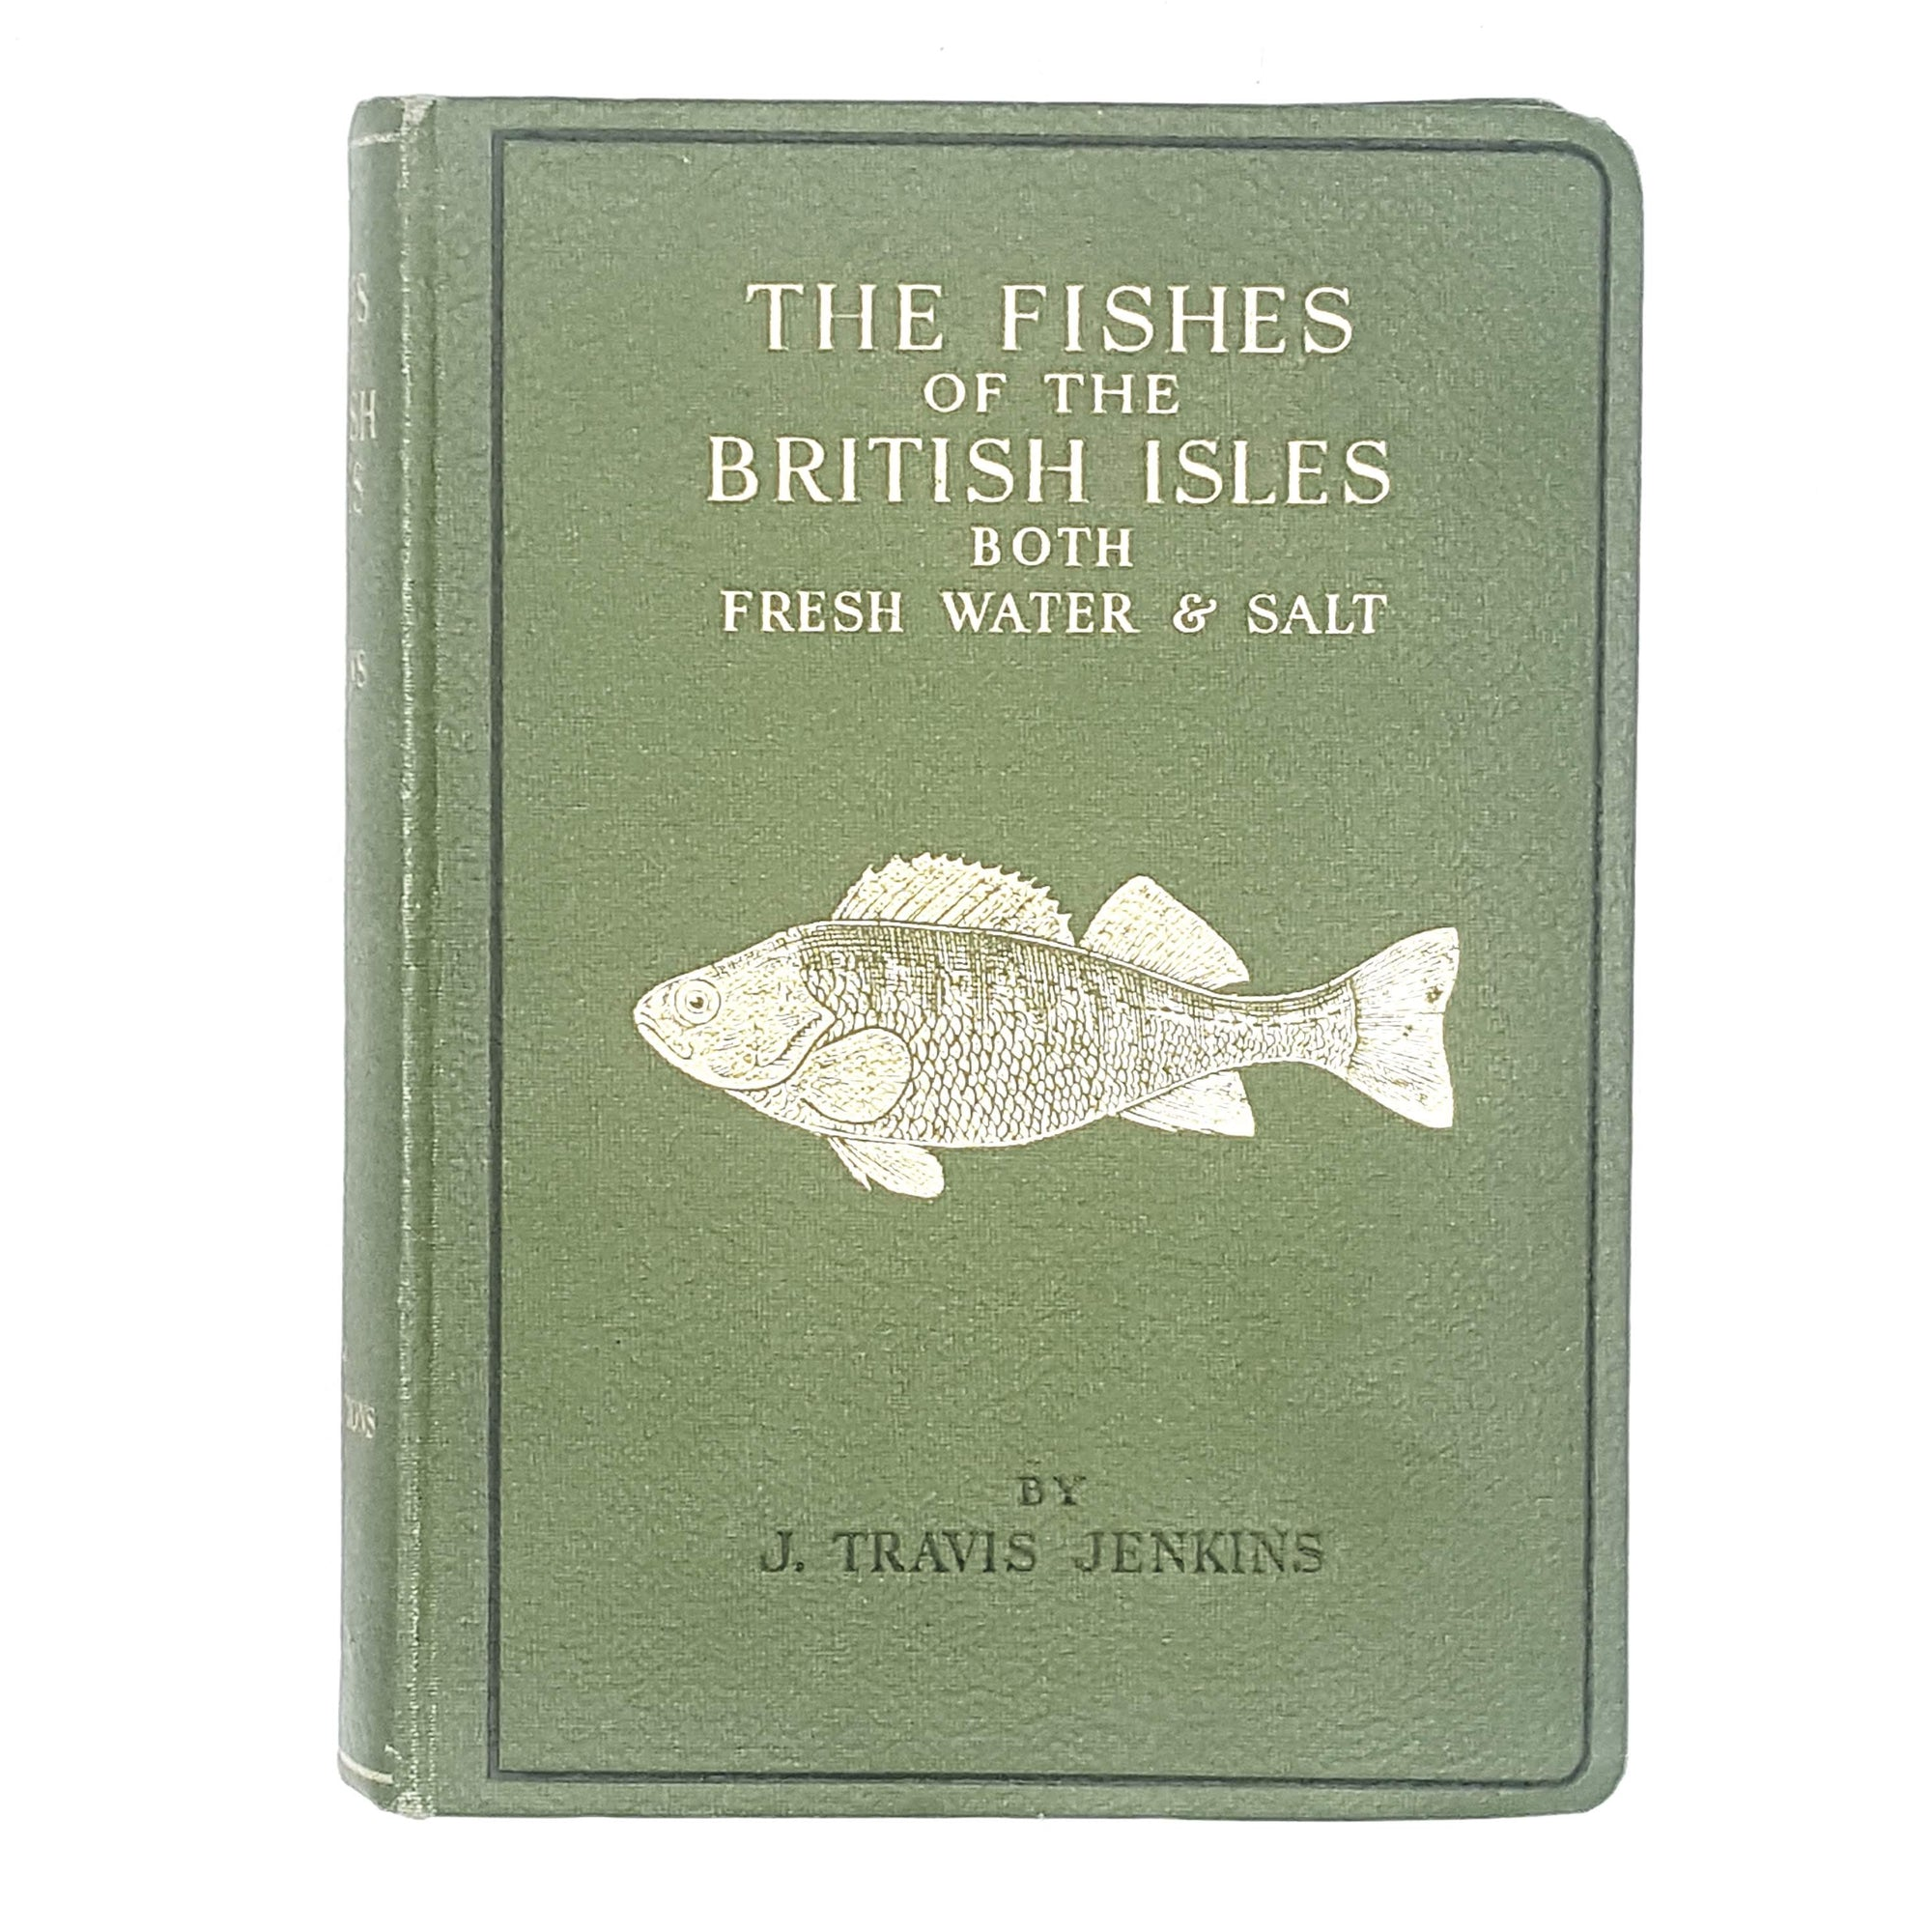 Illustrated The Fishes of the British Isles Both Fresh Water & Salt by J. Travis Jenkins 1942